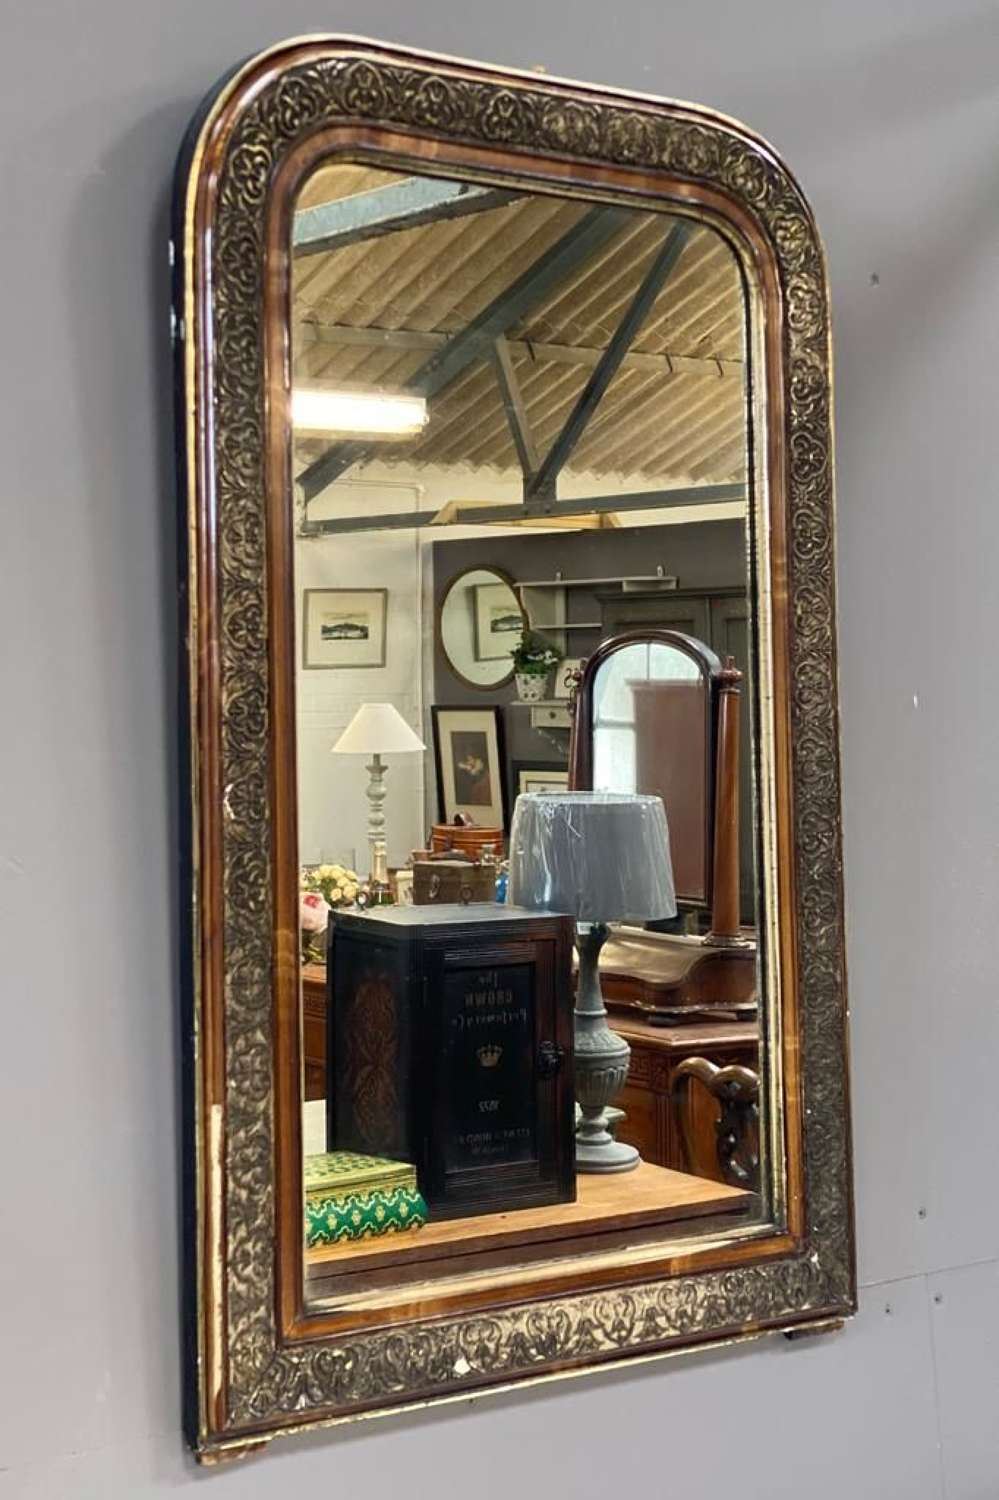 Vintage French Arched mirror